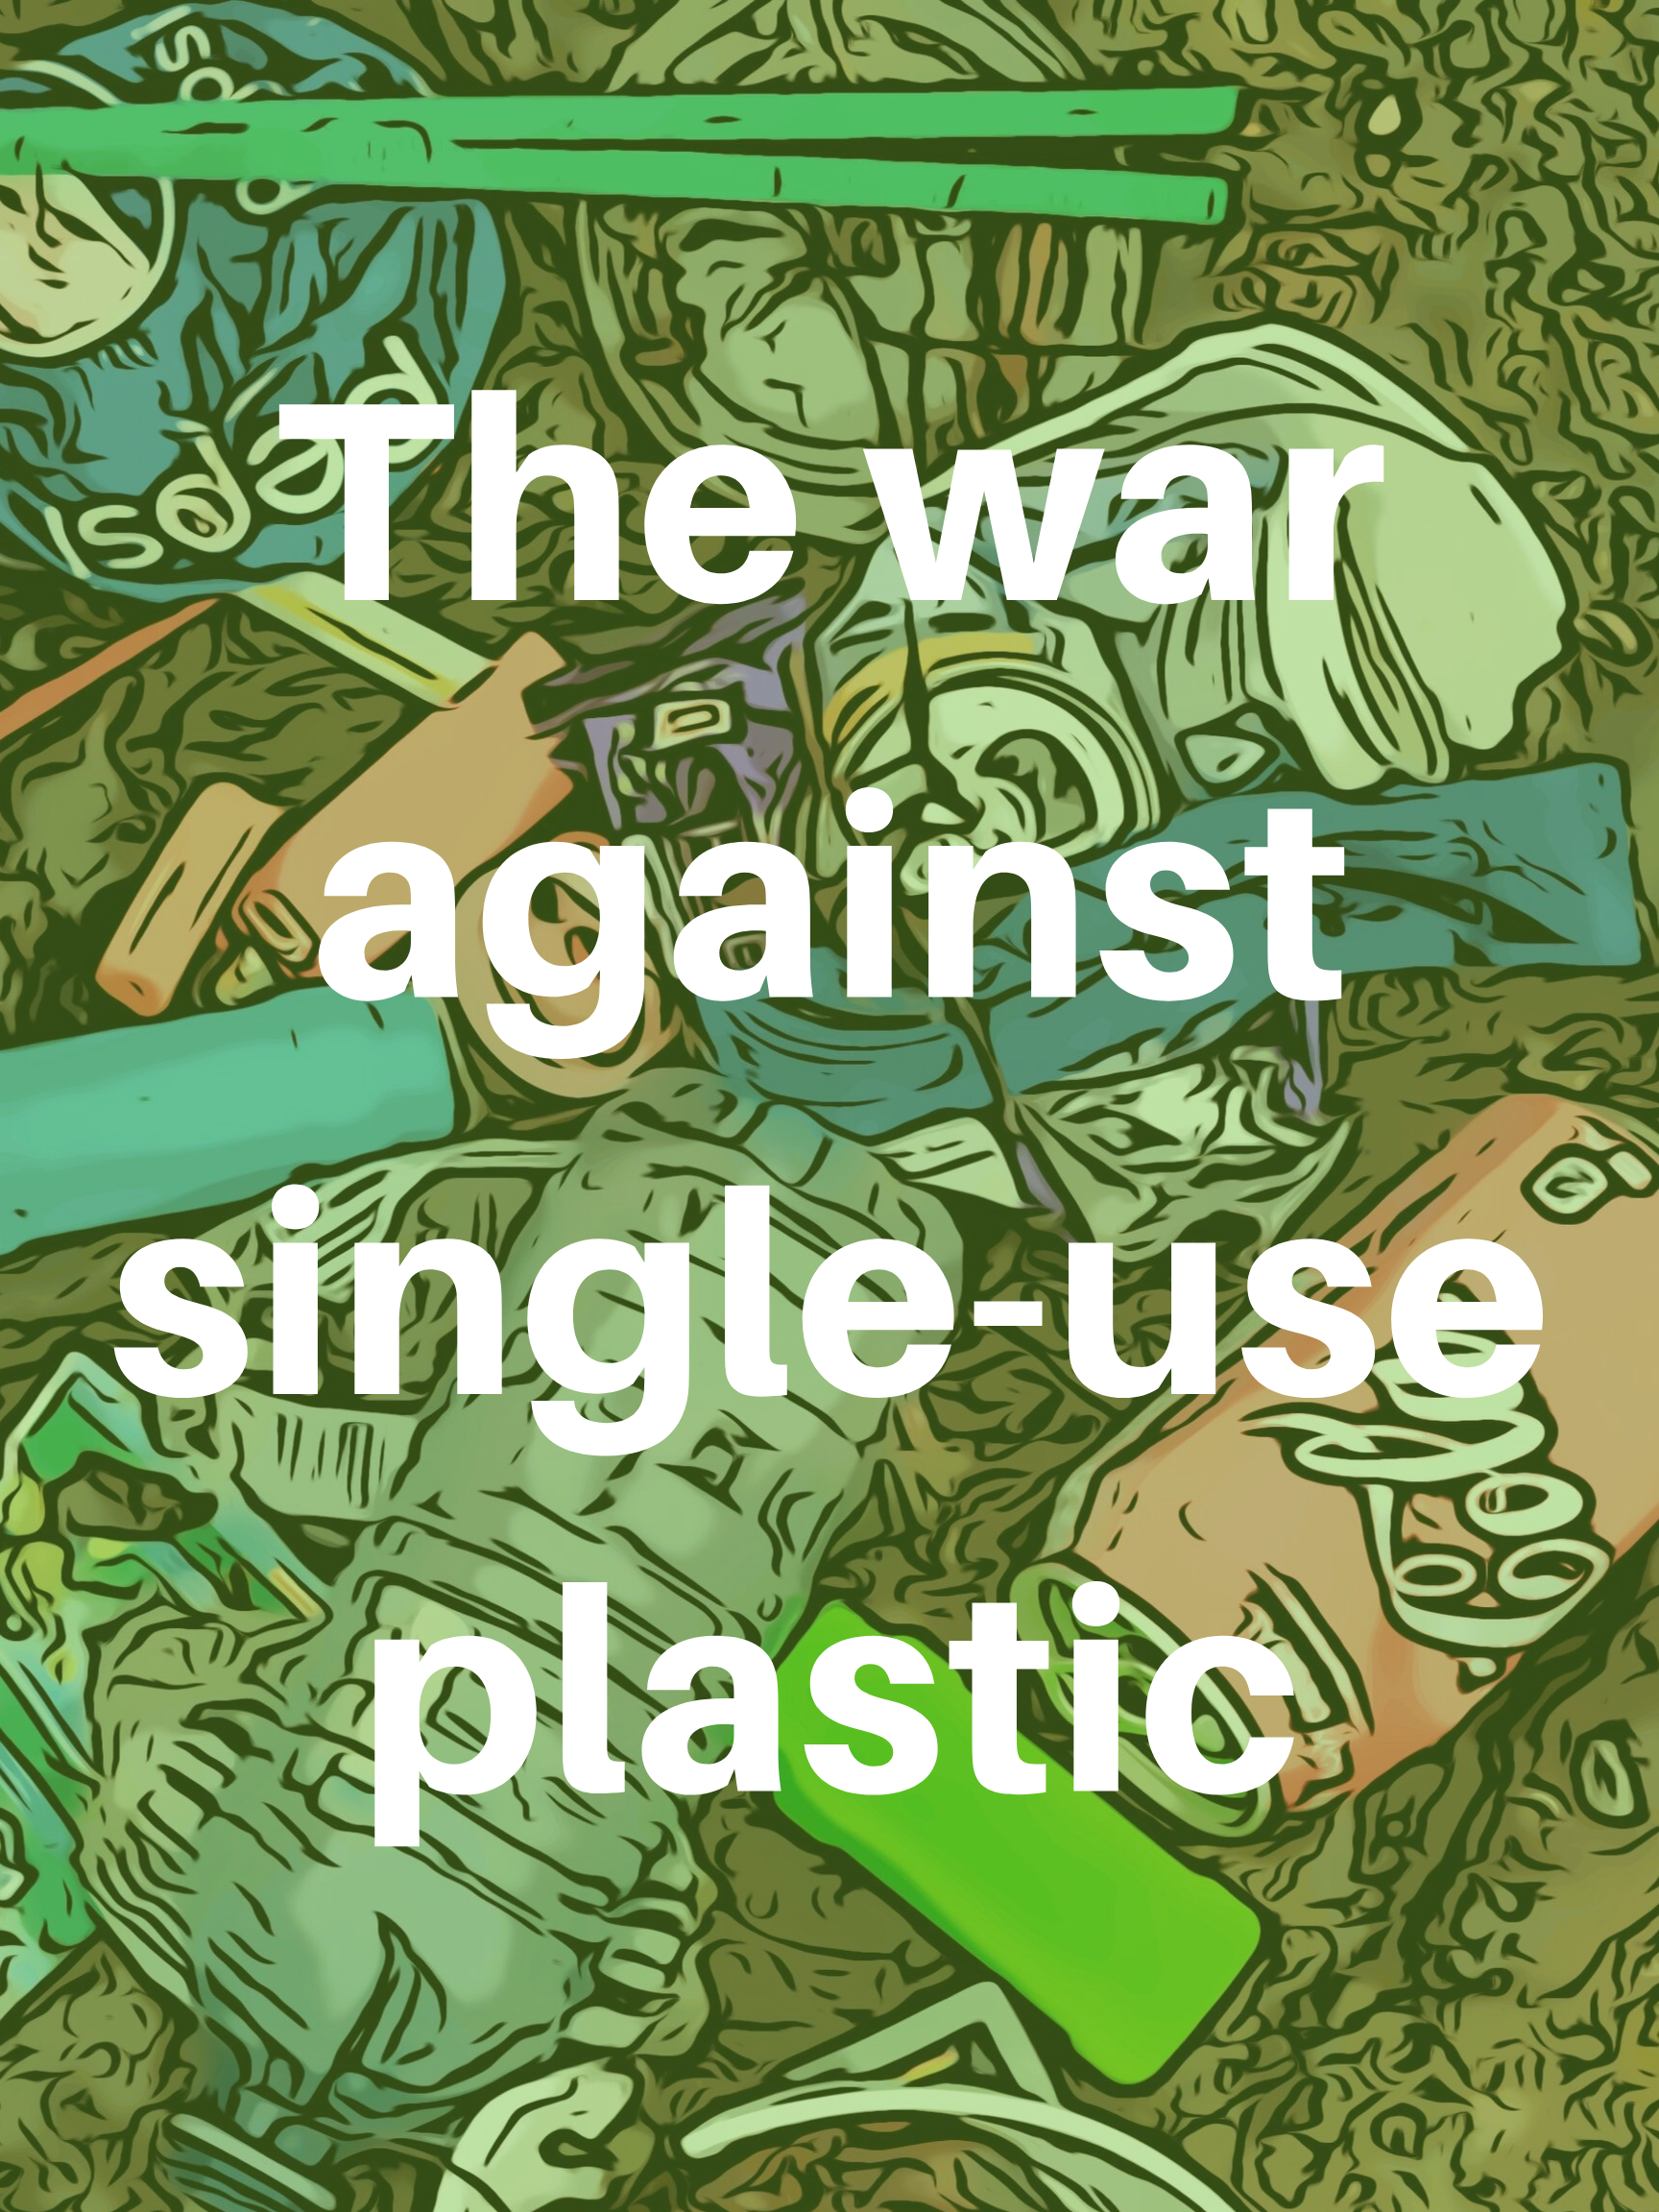 The war against single-use plastic